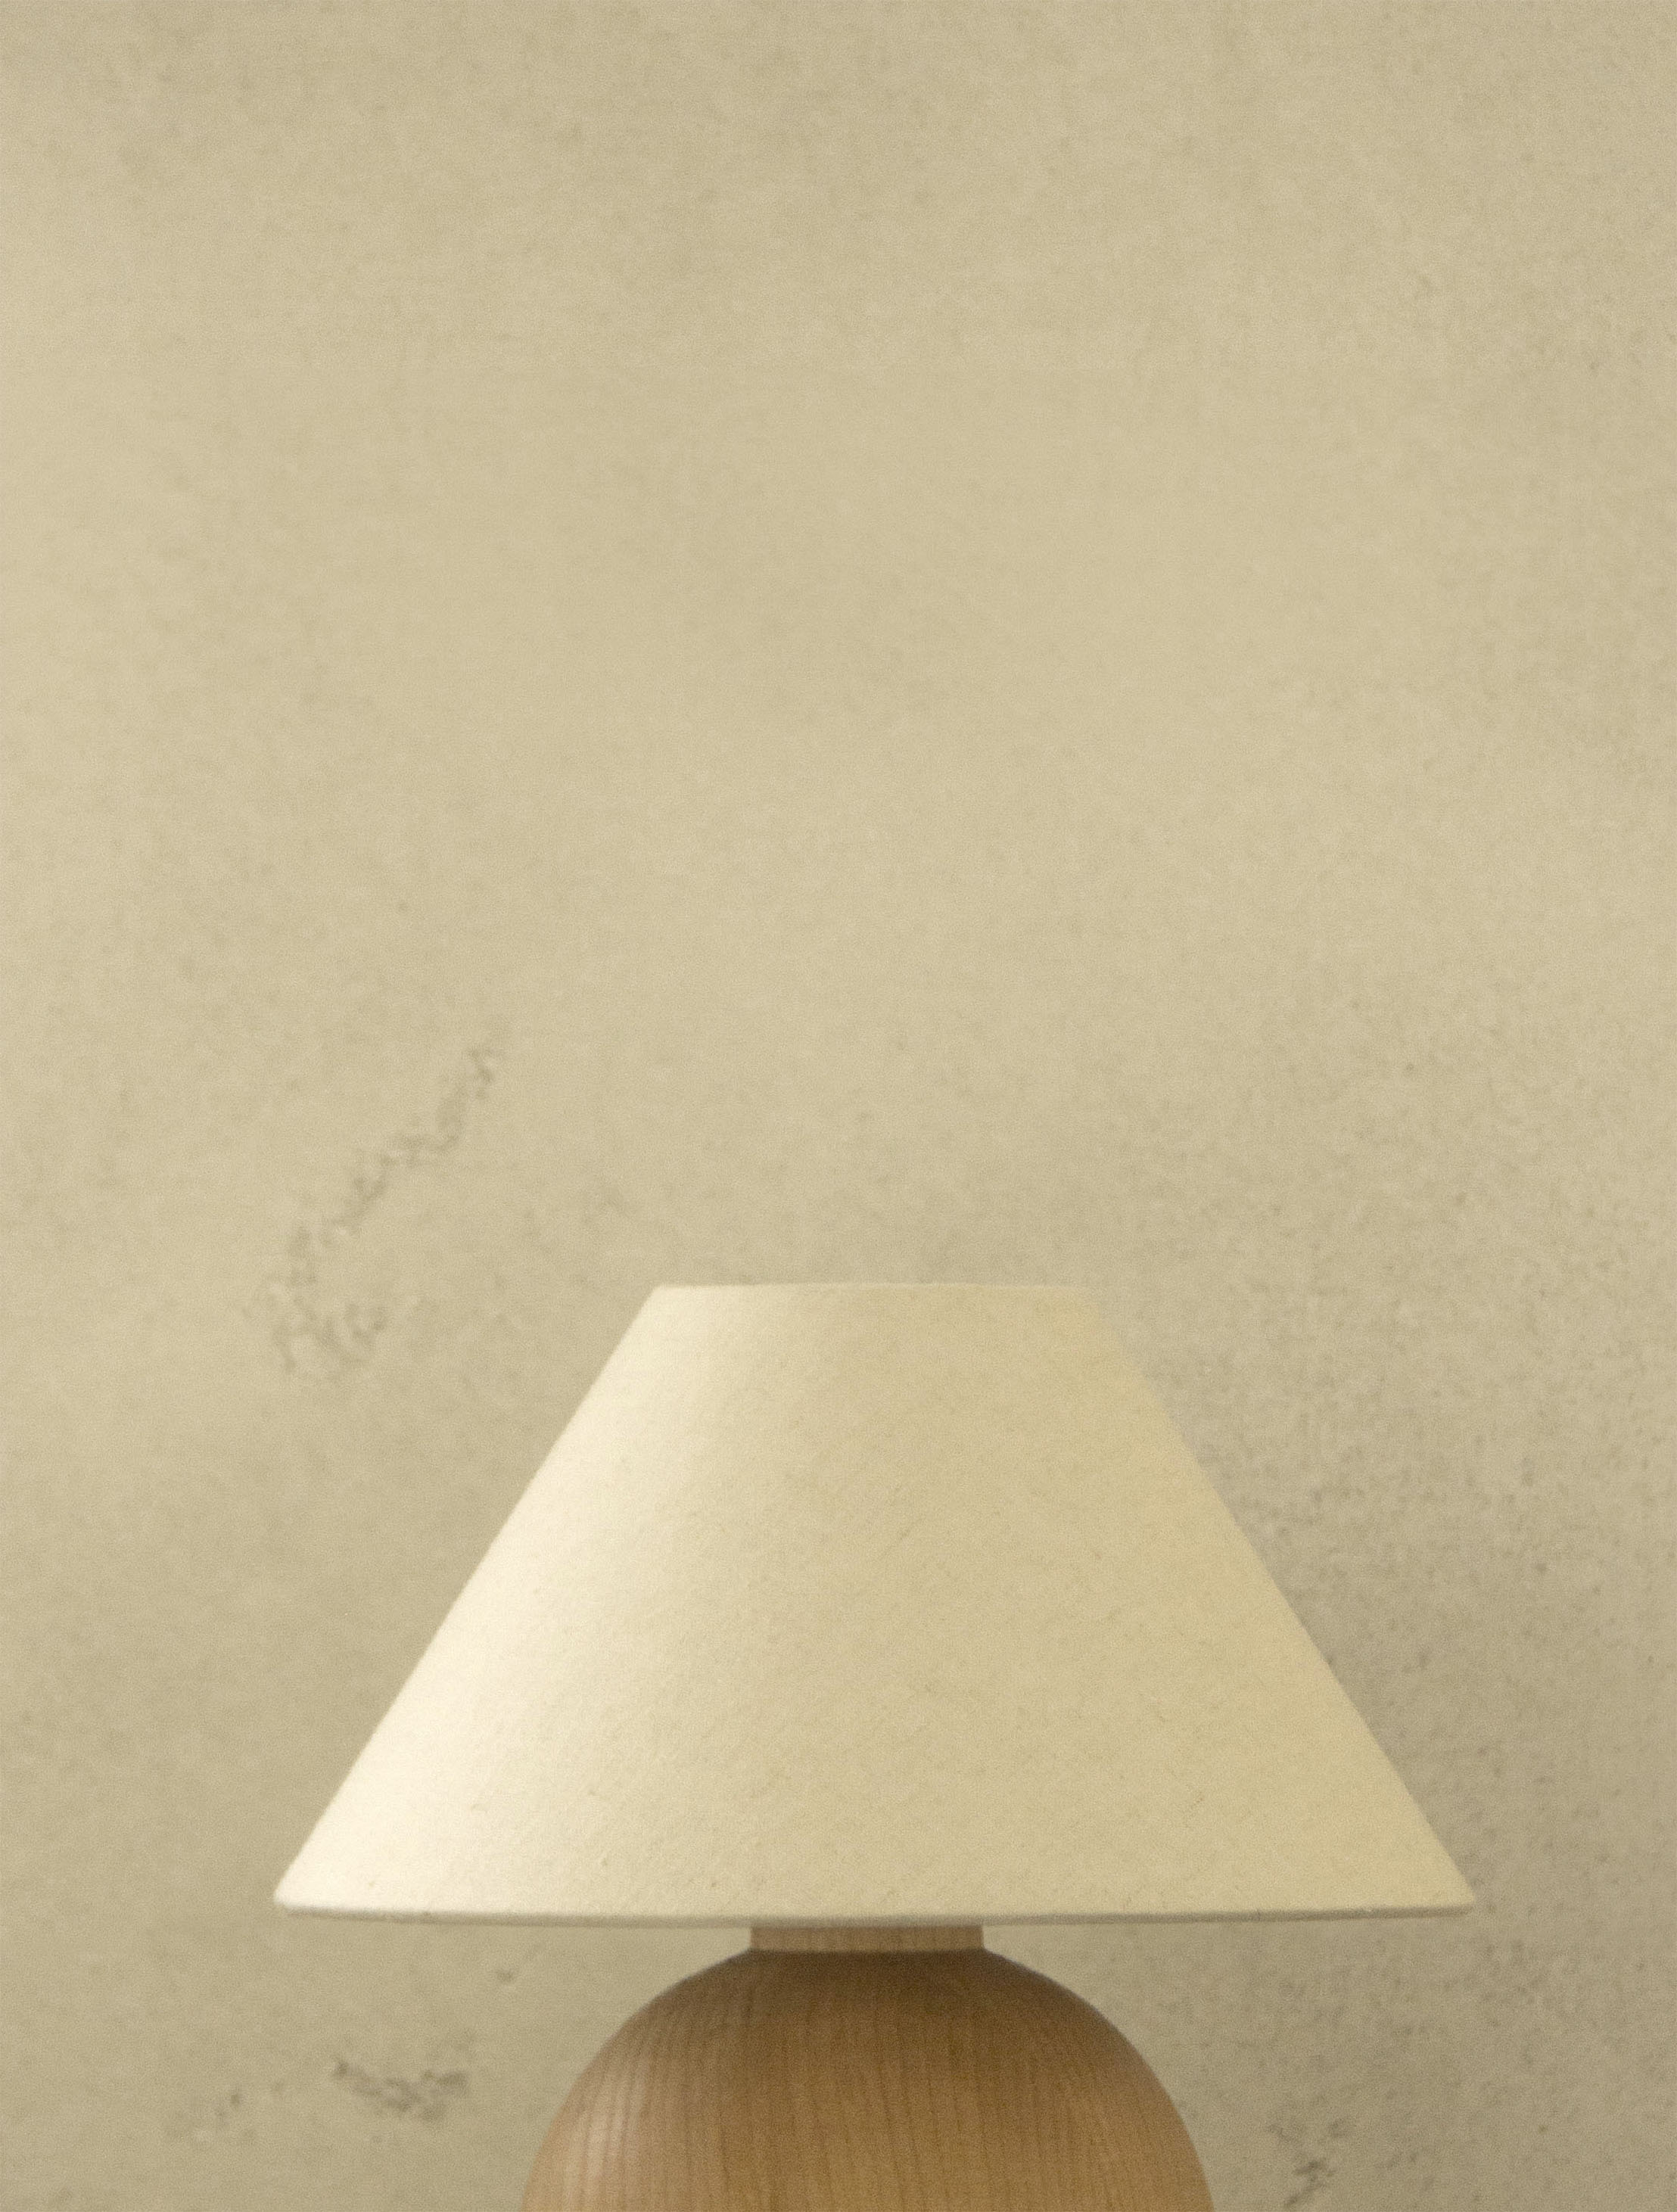 wood lamp shade_SH001